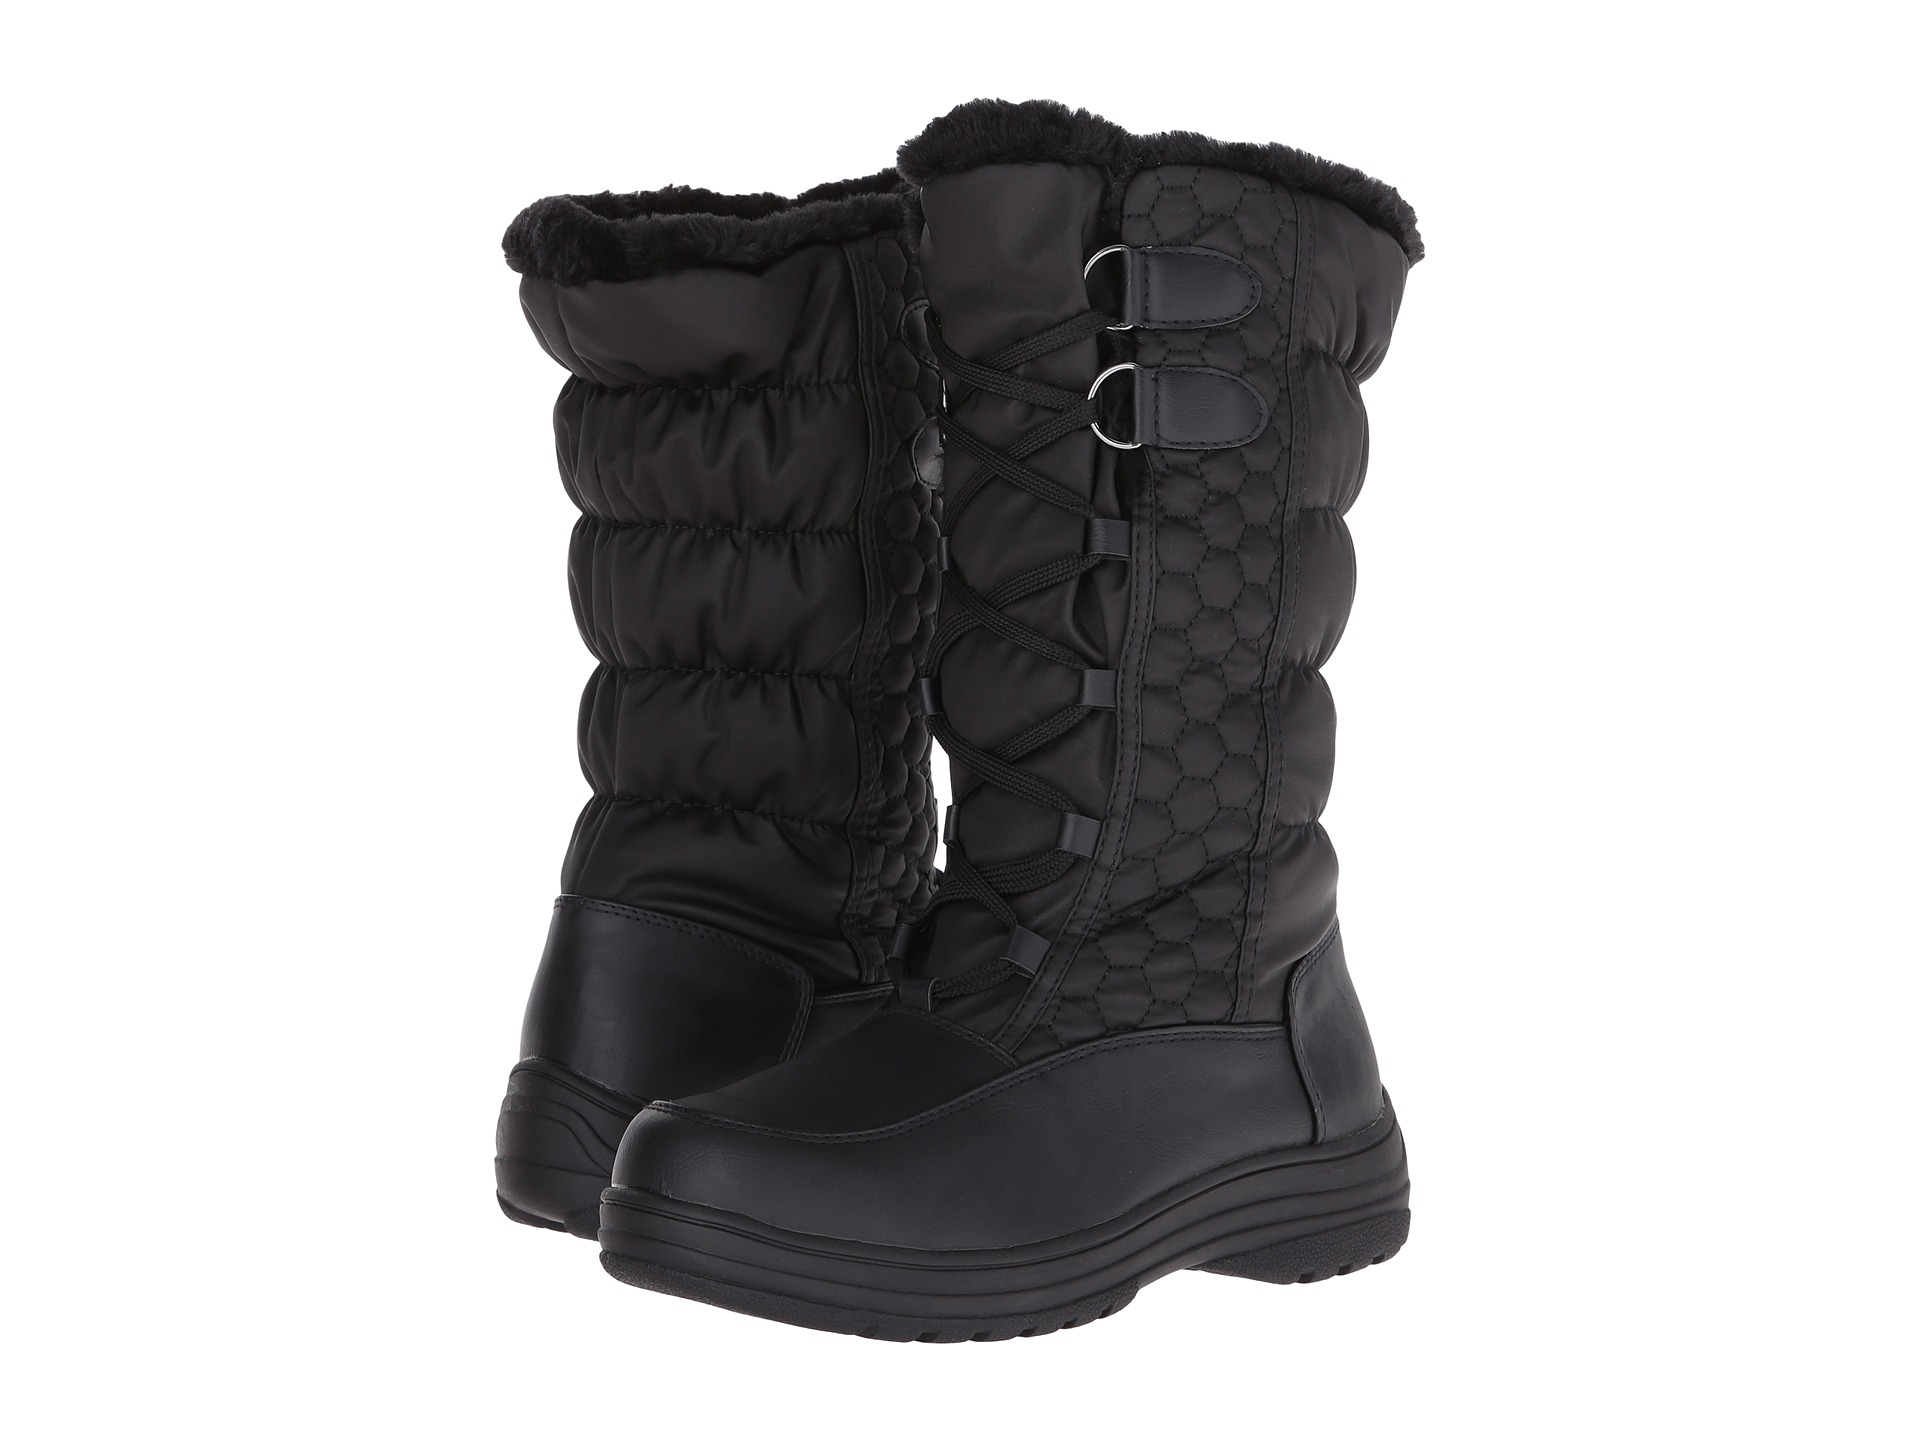 giant black booties You want a tiny, tight cuff, not a giant doughnut of fabric at the ankle.